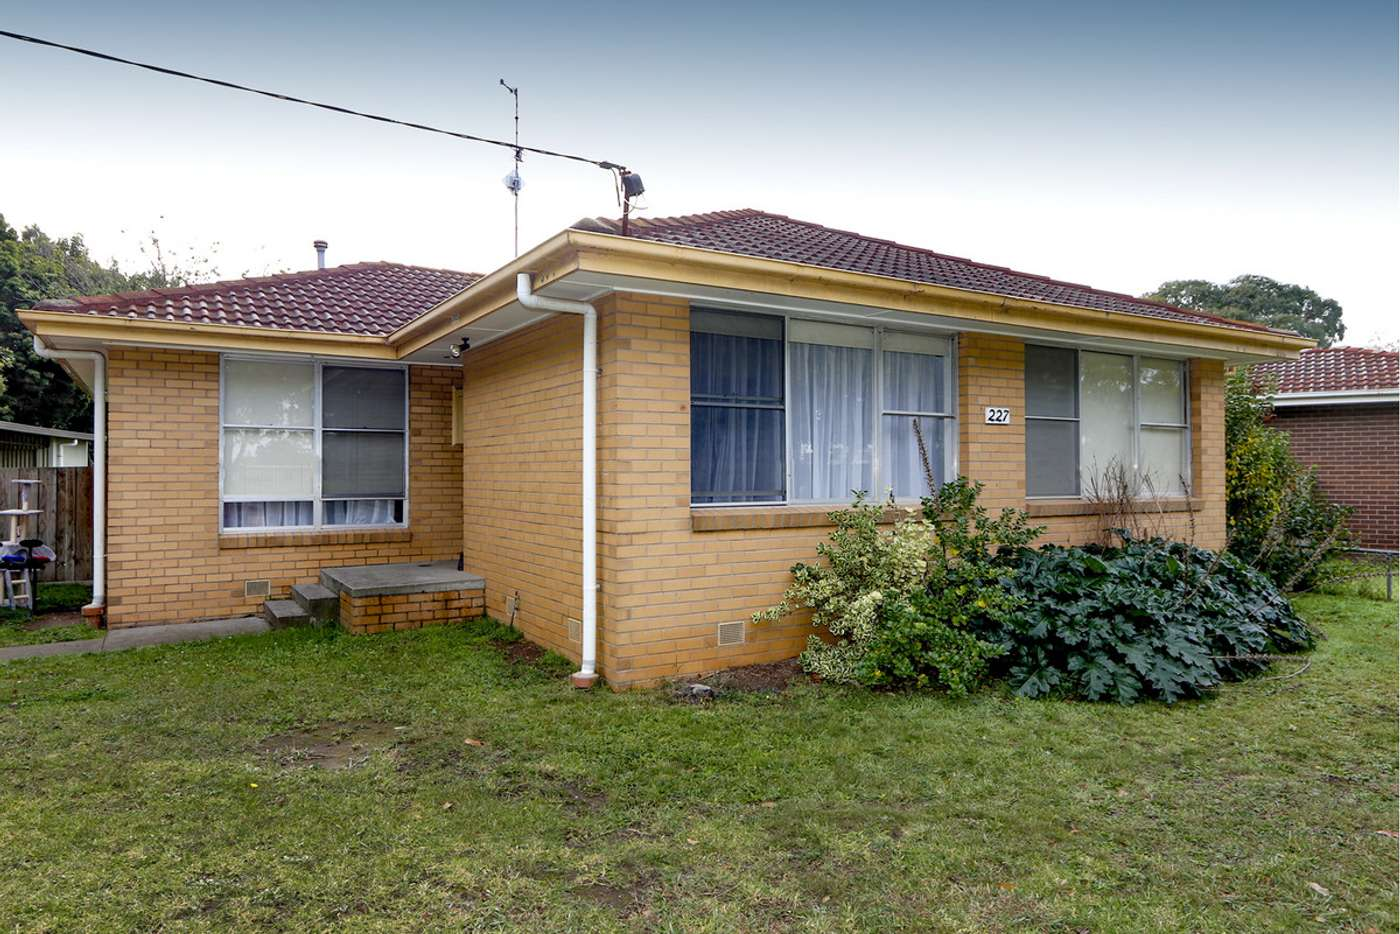 Main view of Homely house listing, 227 Dawson Street, Sale VIC 3850